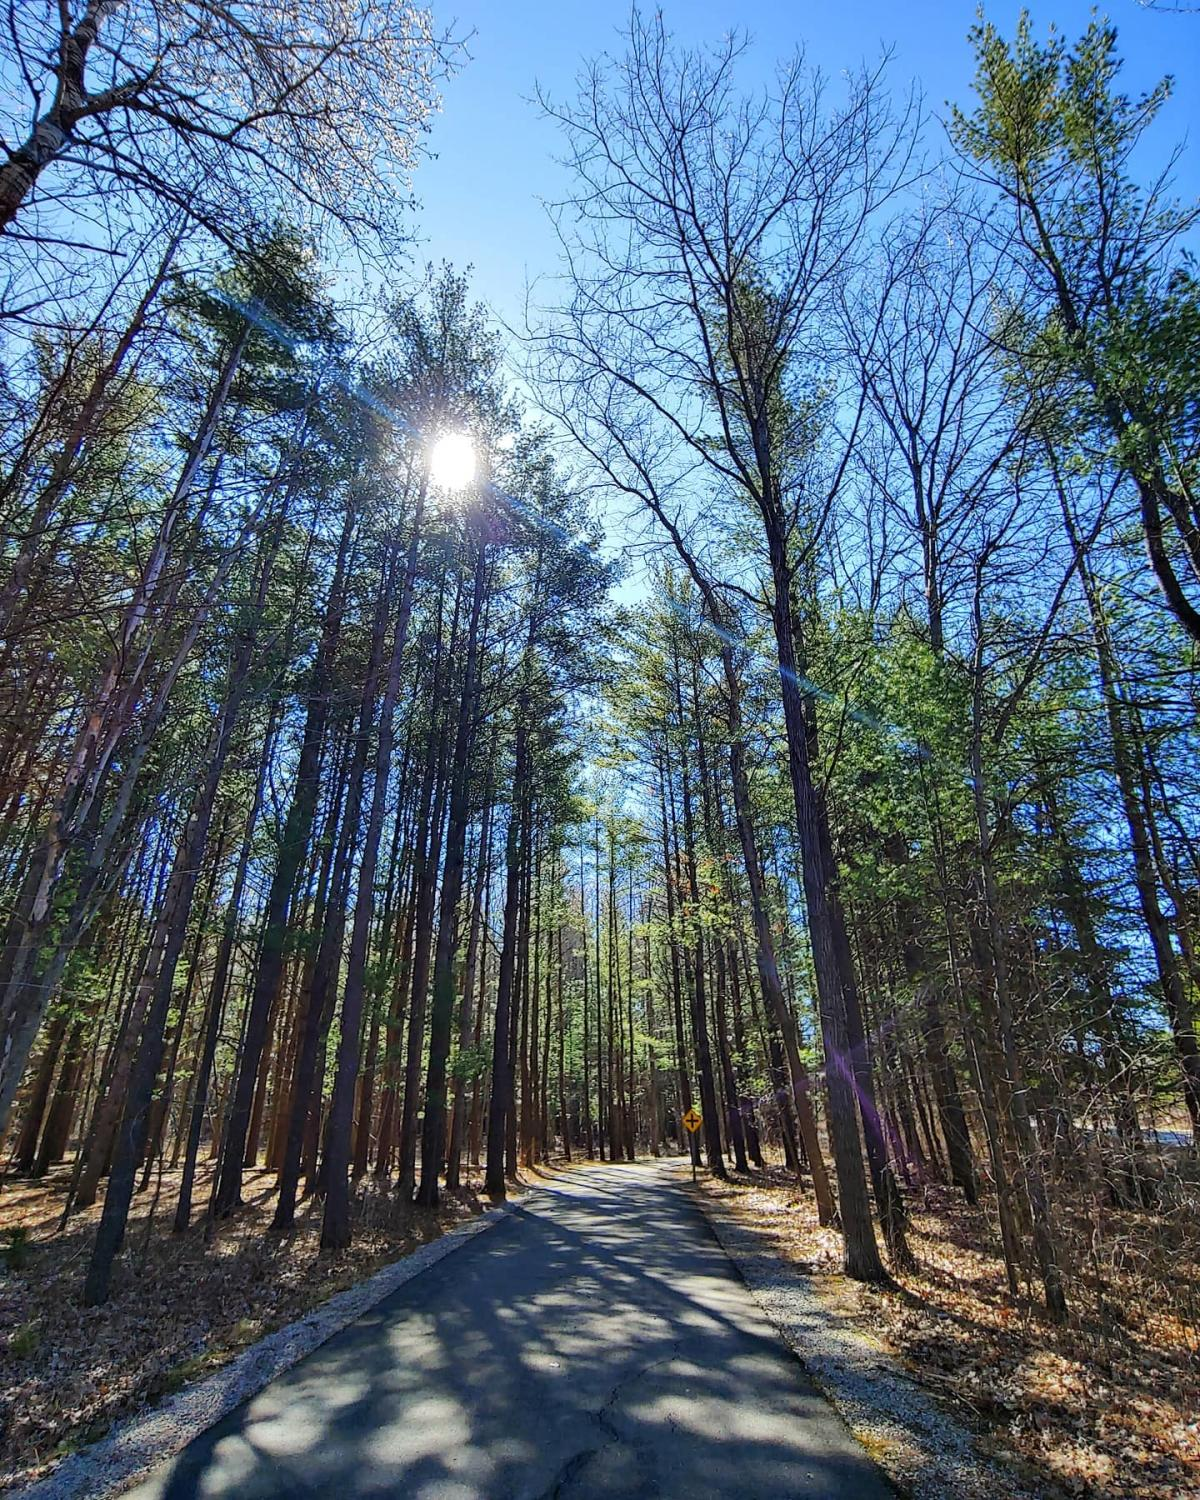 Sun shining through the trees on the trails of Chippewa Nature Center in Midland